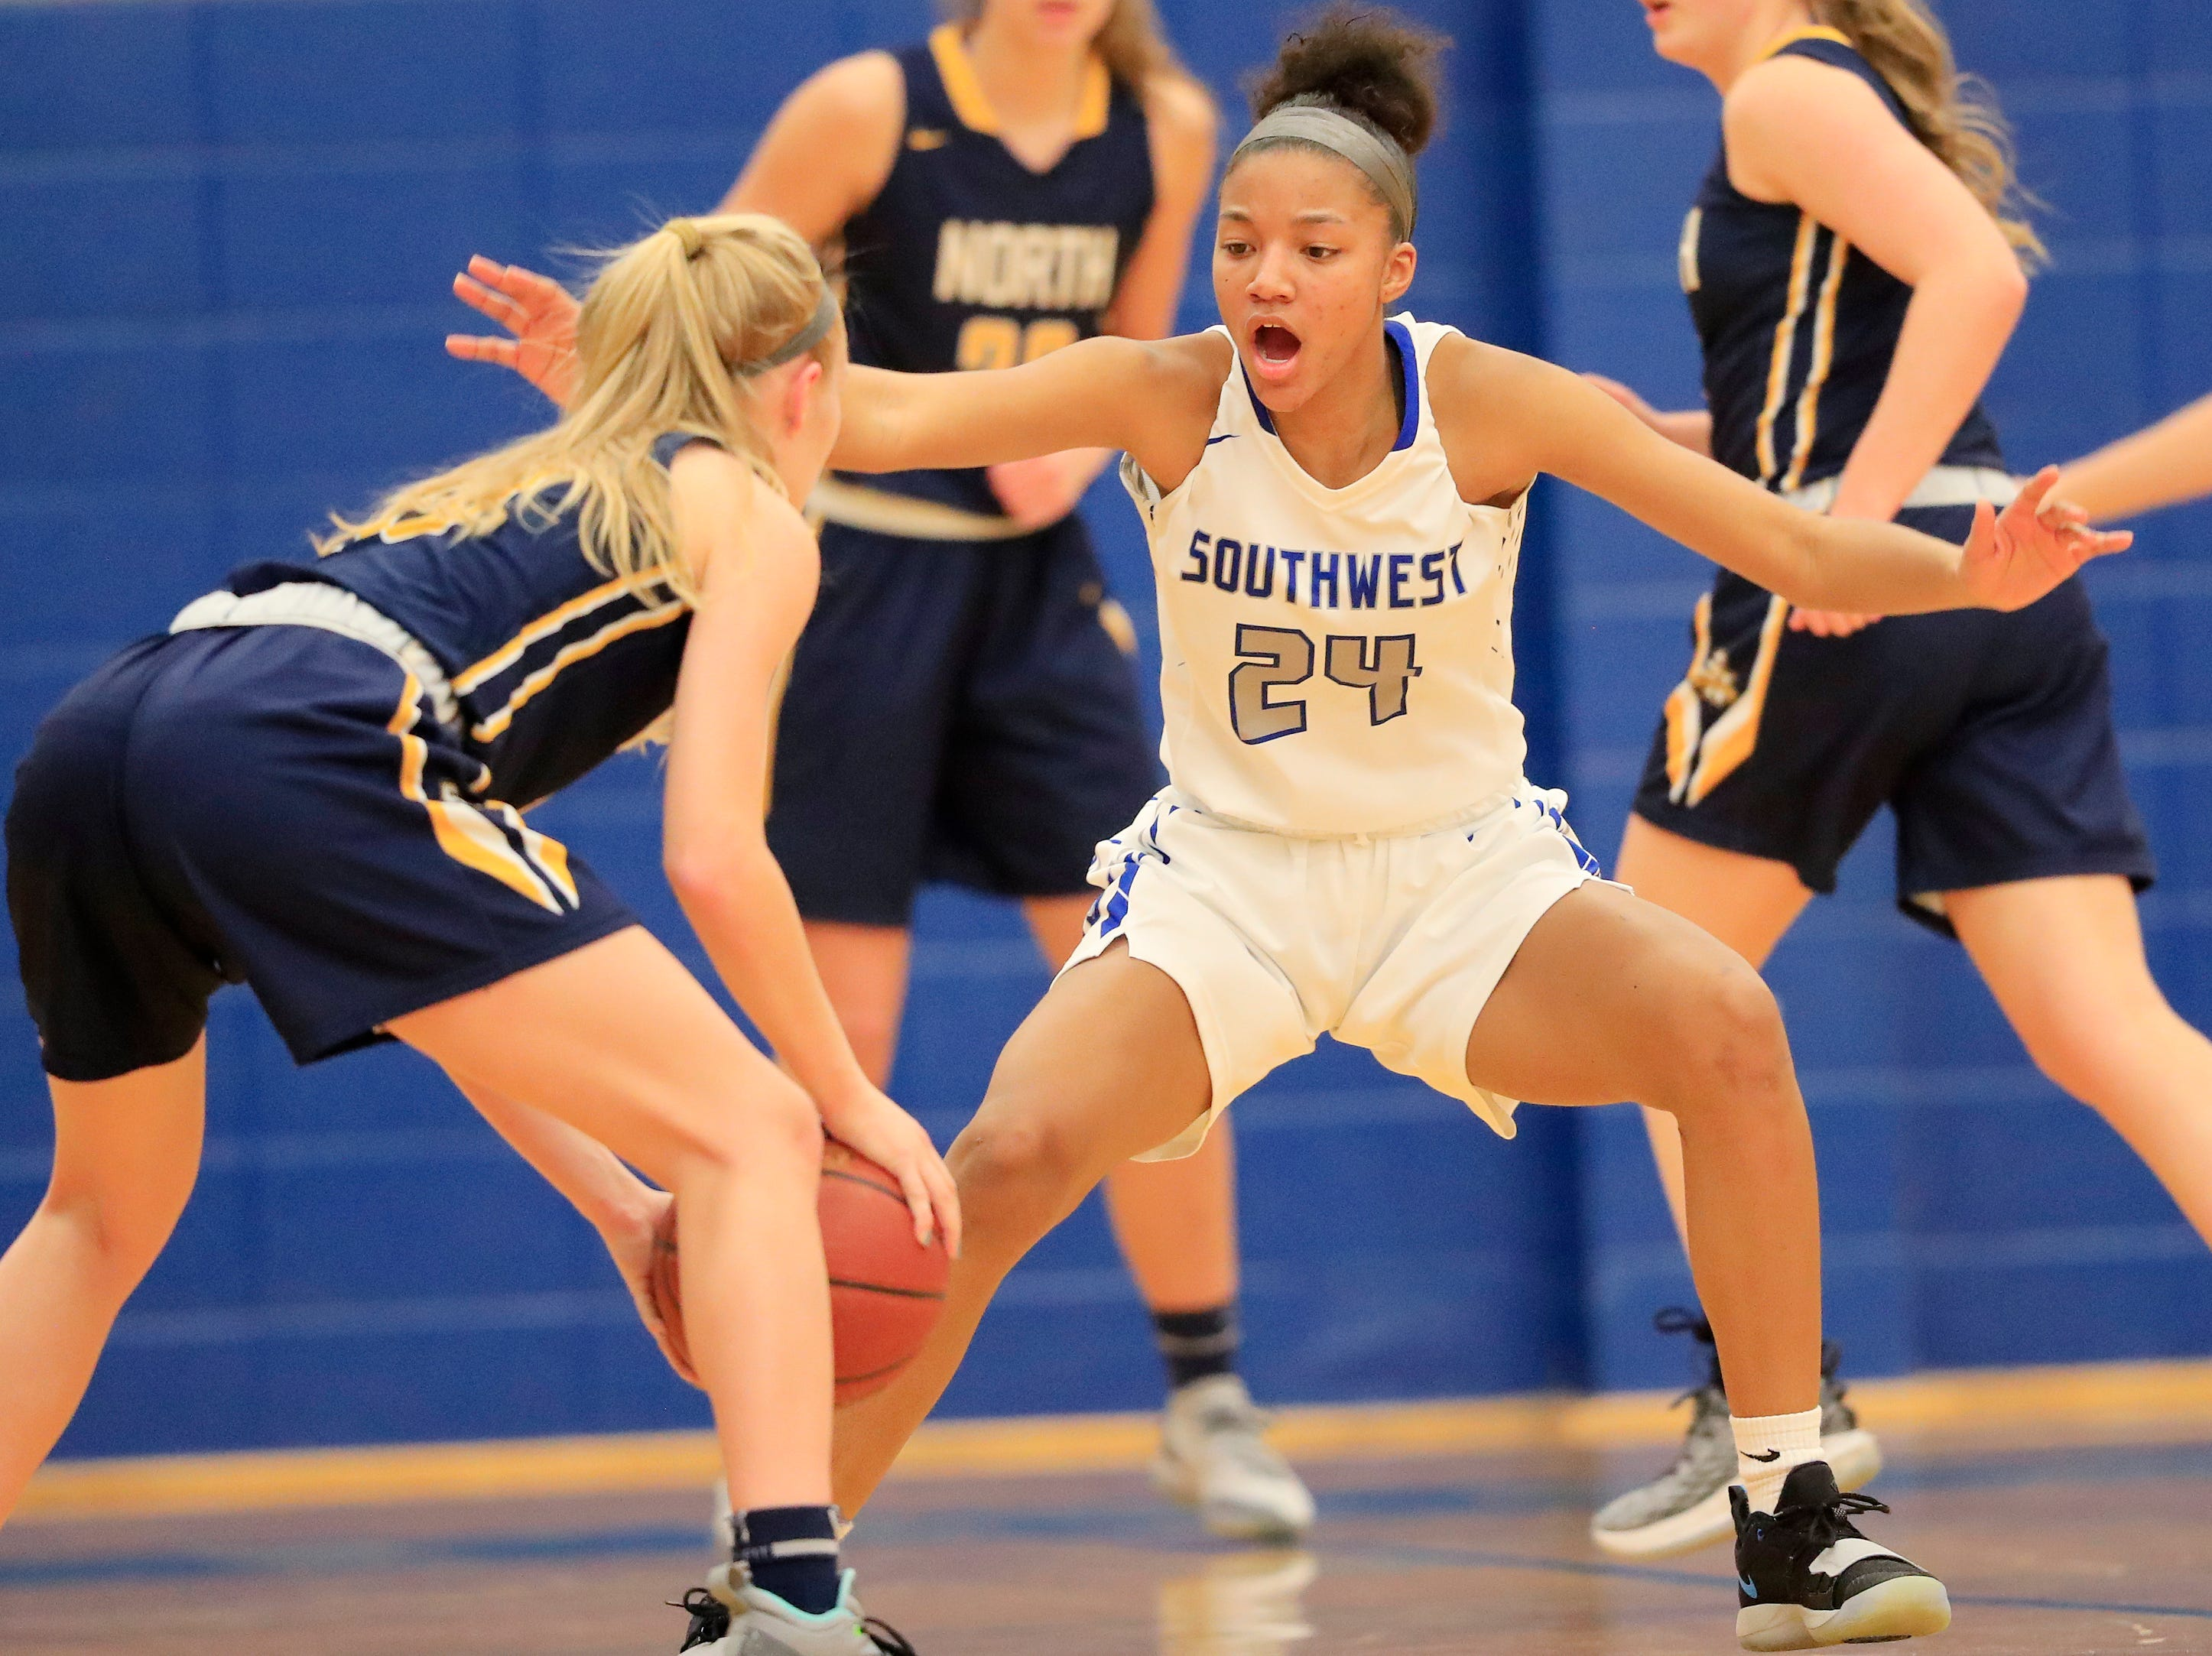 Green Bay Southwest's Jahzmeen Jackson (24) defends against Sheboygan North in a girls basketball game at Southwest High School on Tuesday, February 5, 2019 in Green Bay, Wis.